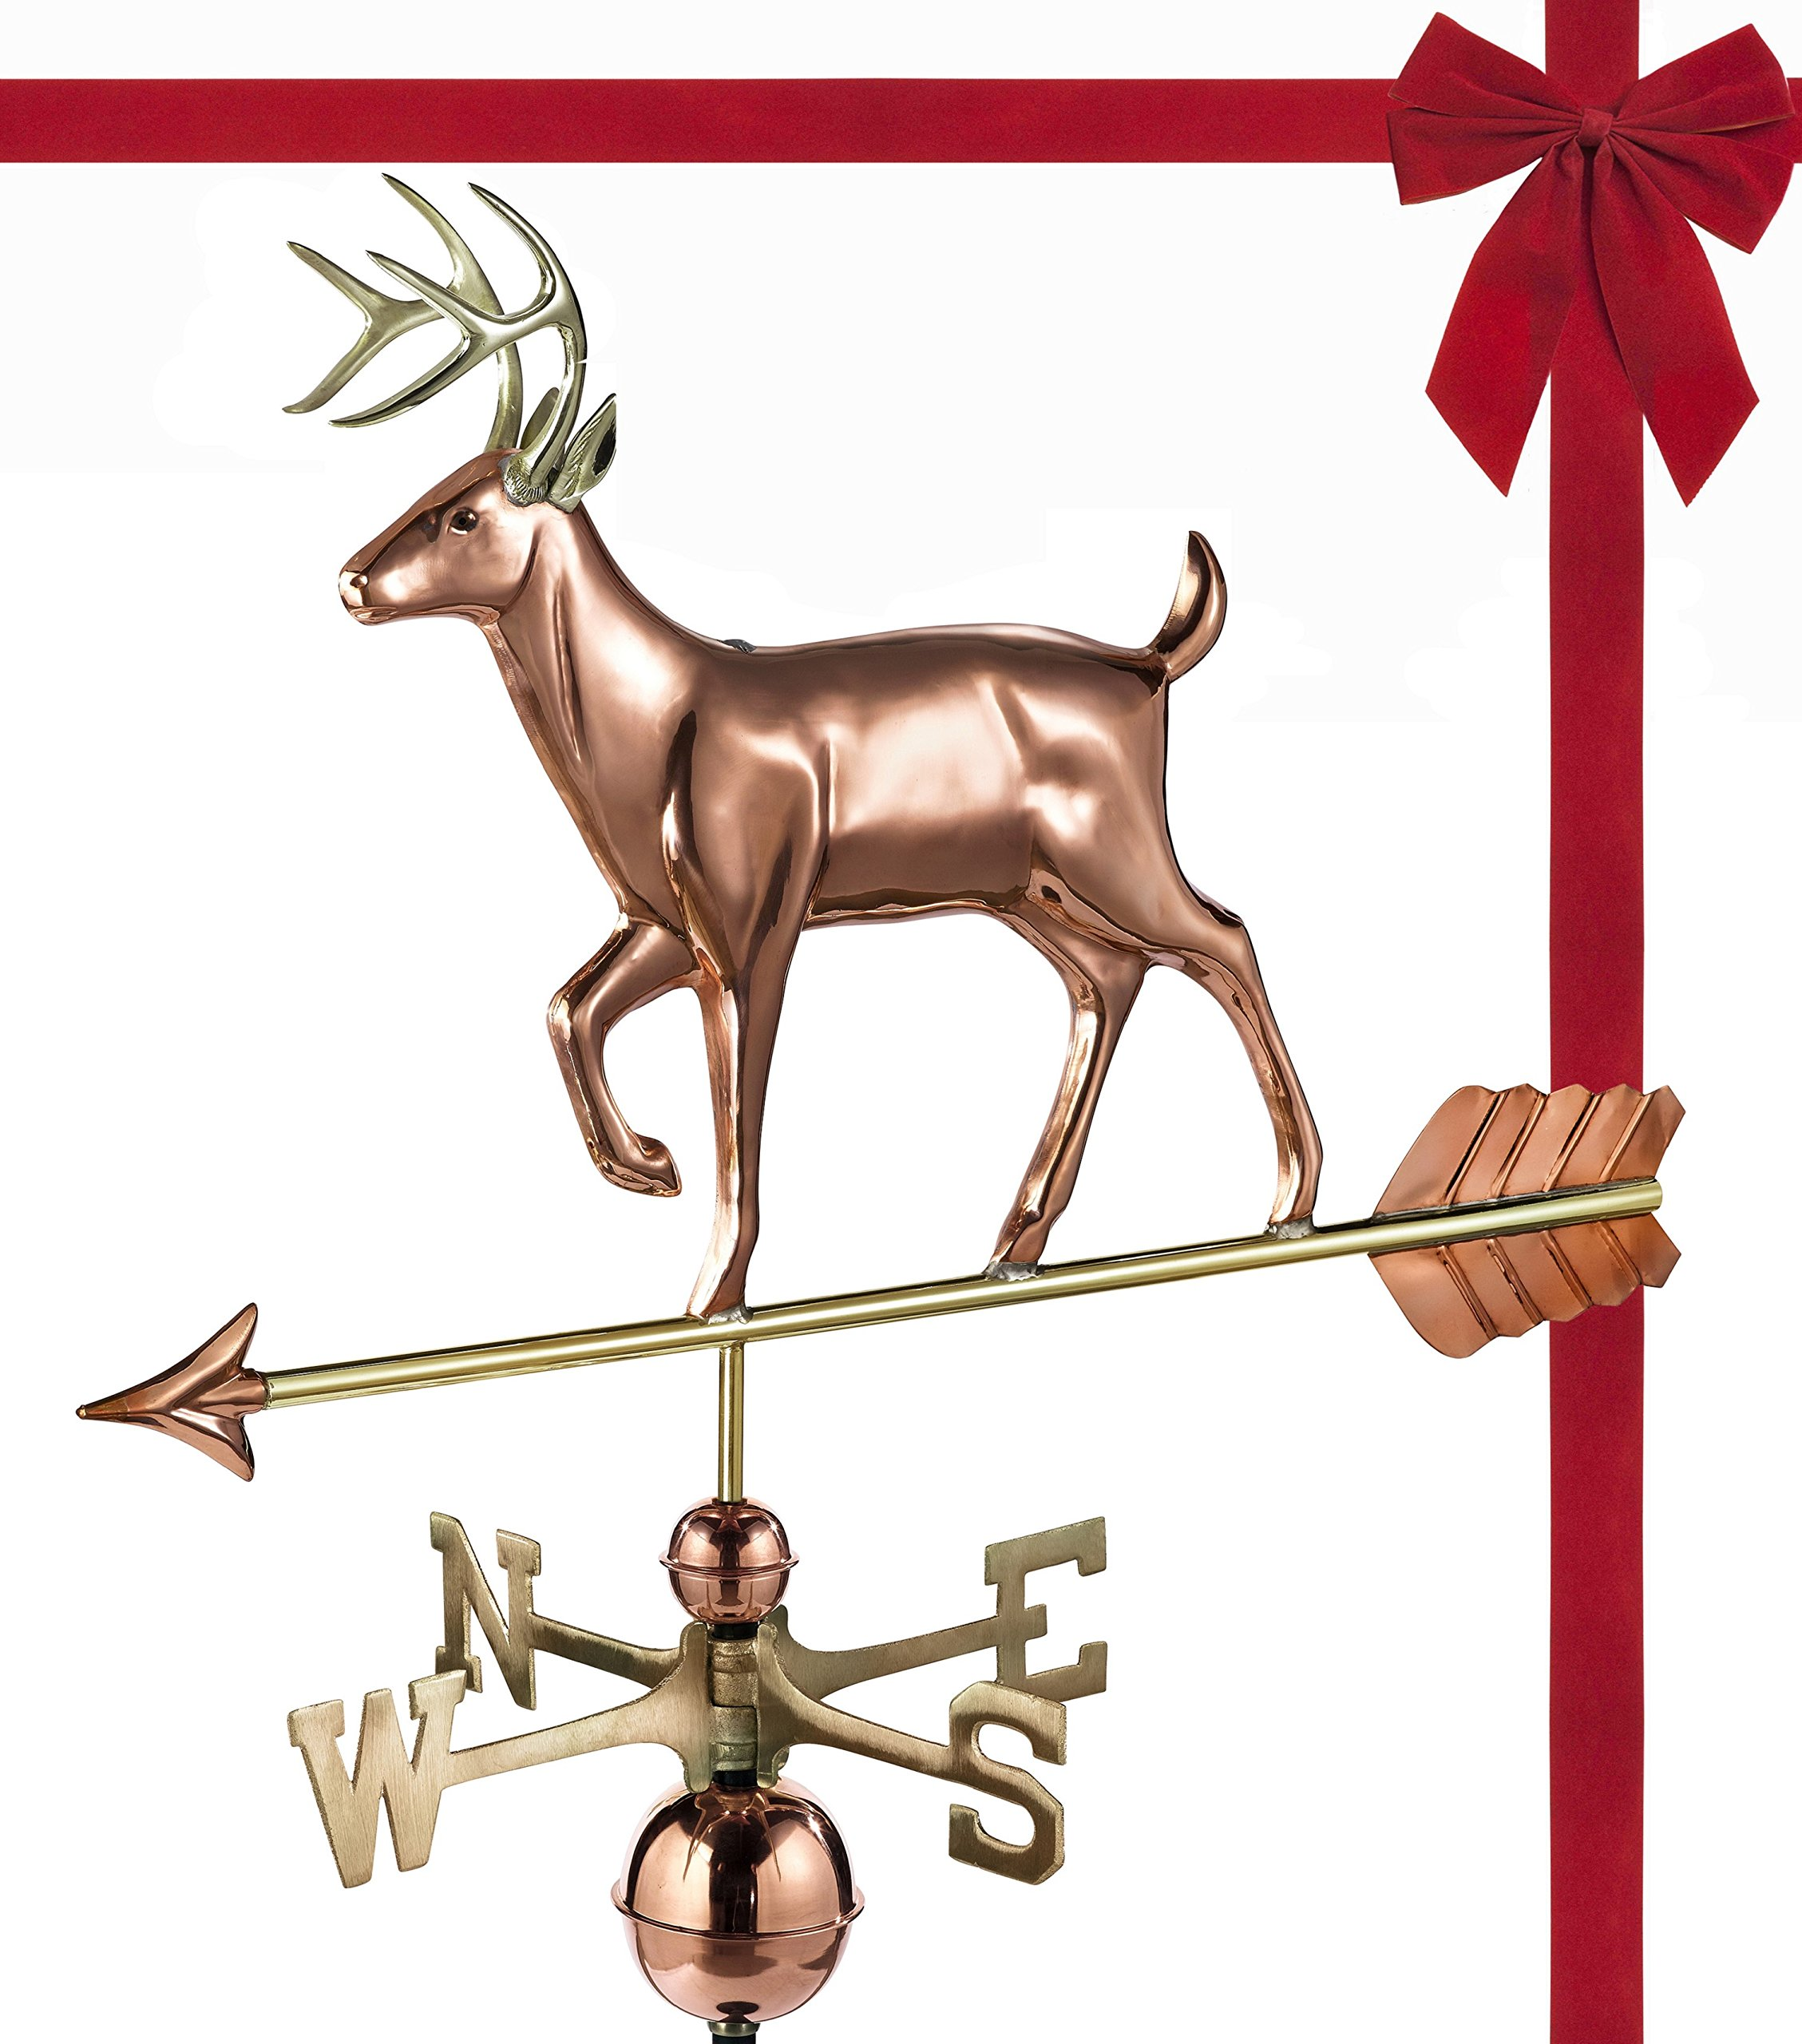 Good Directions White Tail Buck / Deer Weathervane, Pure Copper, Rooftop, Roof Décor, Wildlife by Good Directions